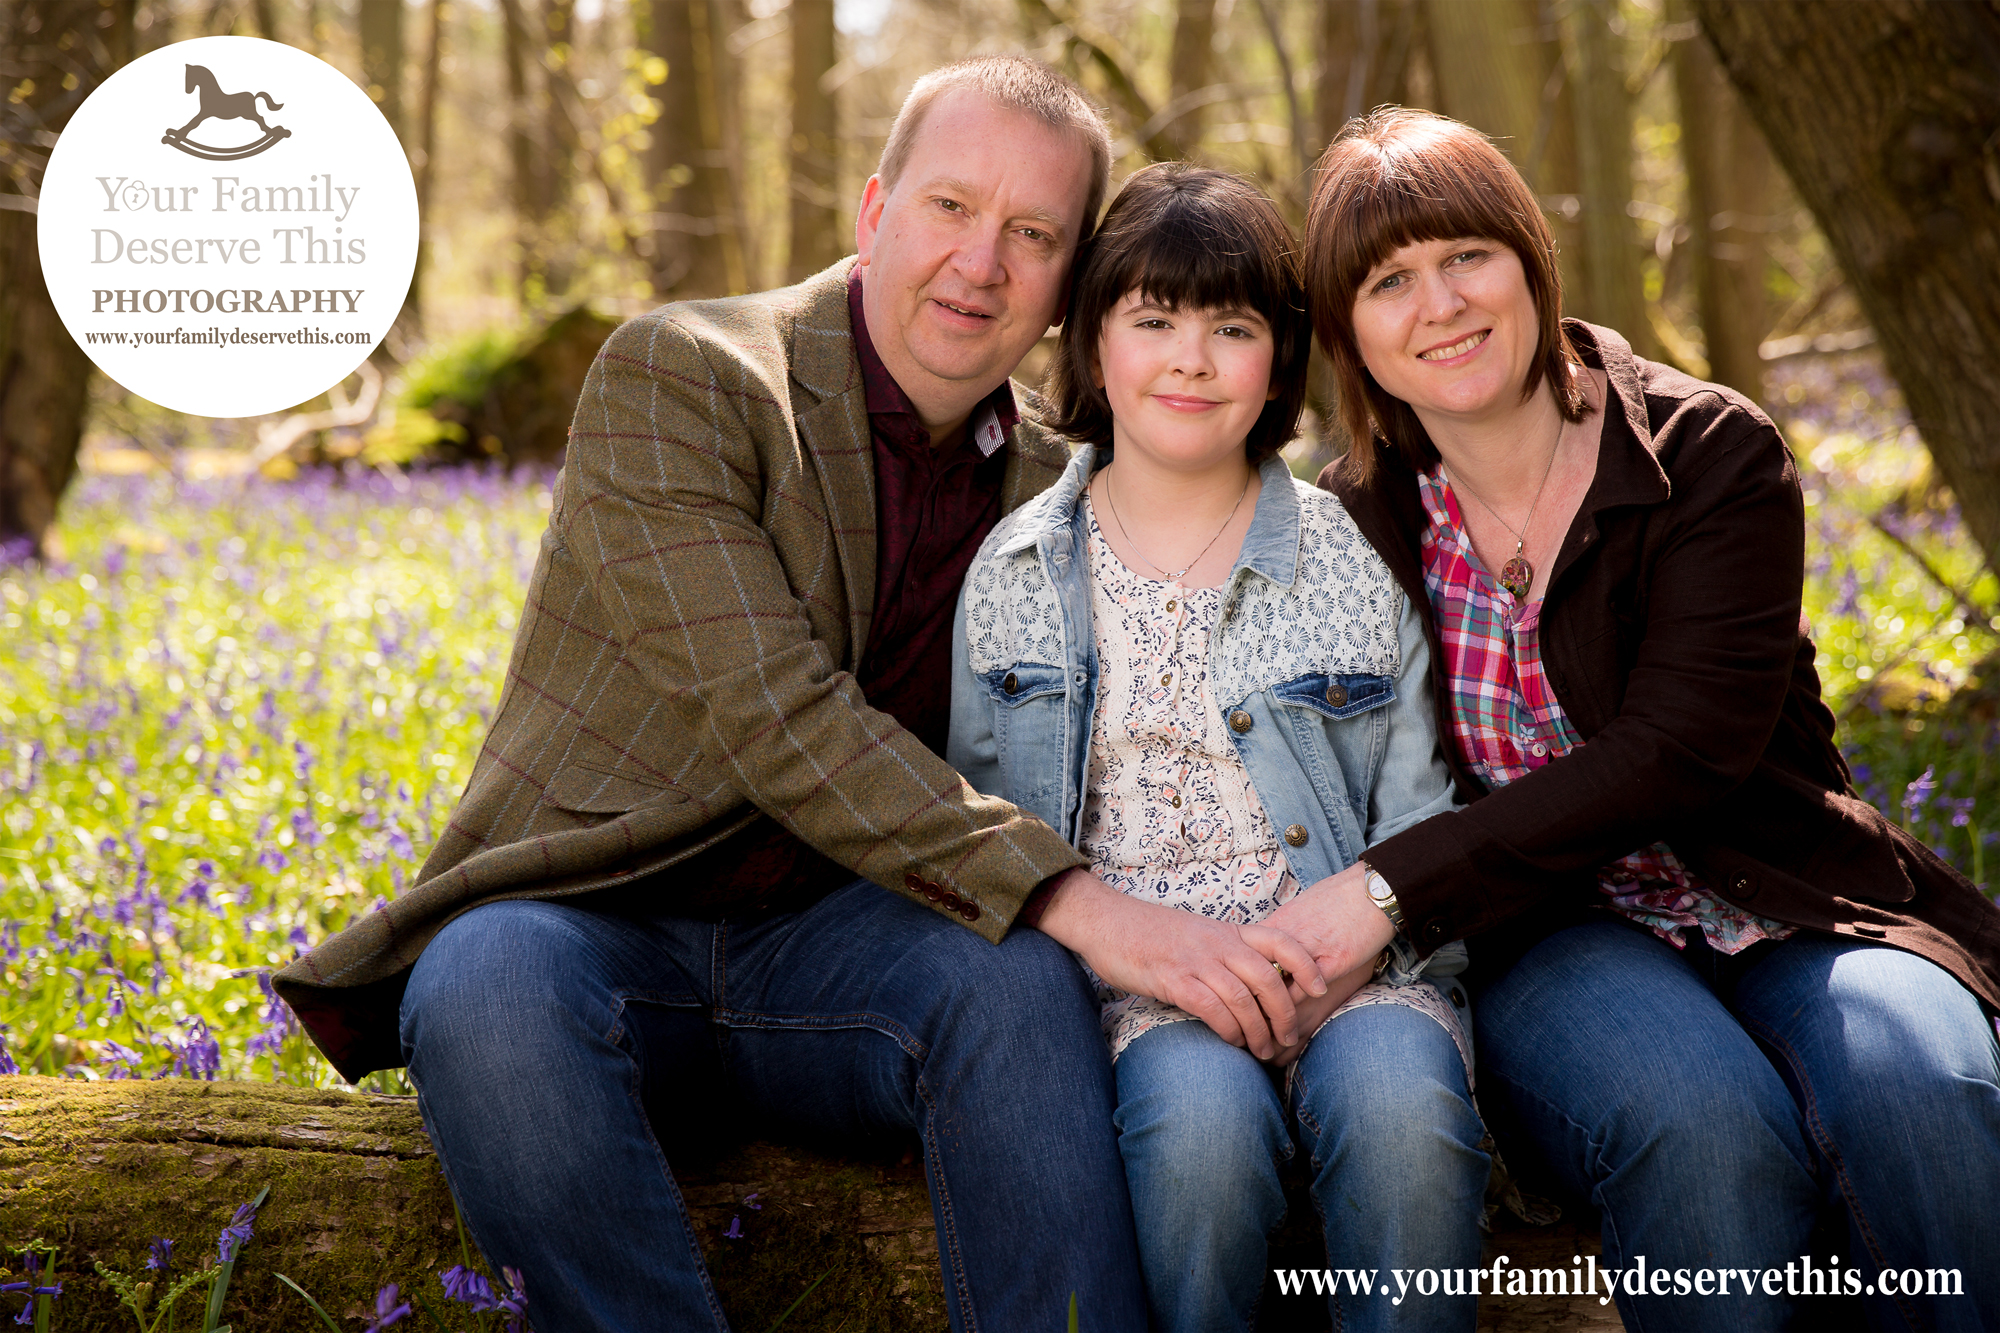 Outdoor Family Portraits in the woods near Tadley, Hampshire.  YourFamilyDeserveThis Photography Studio